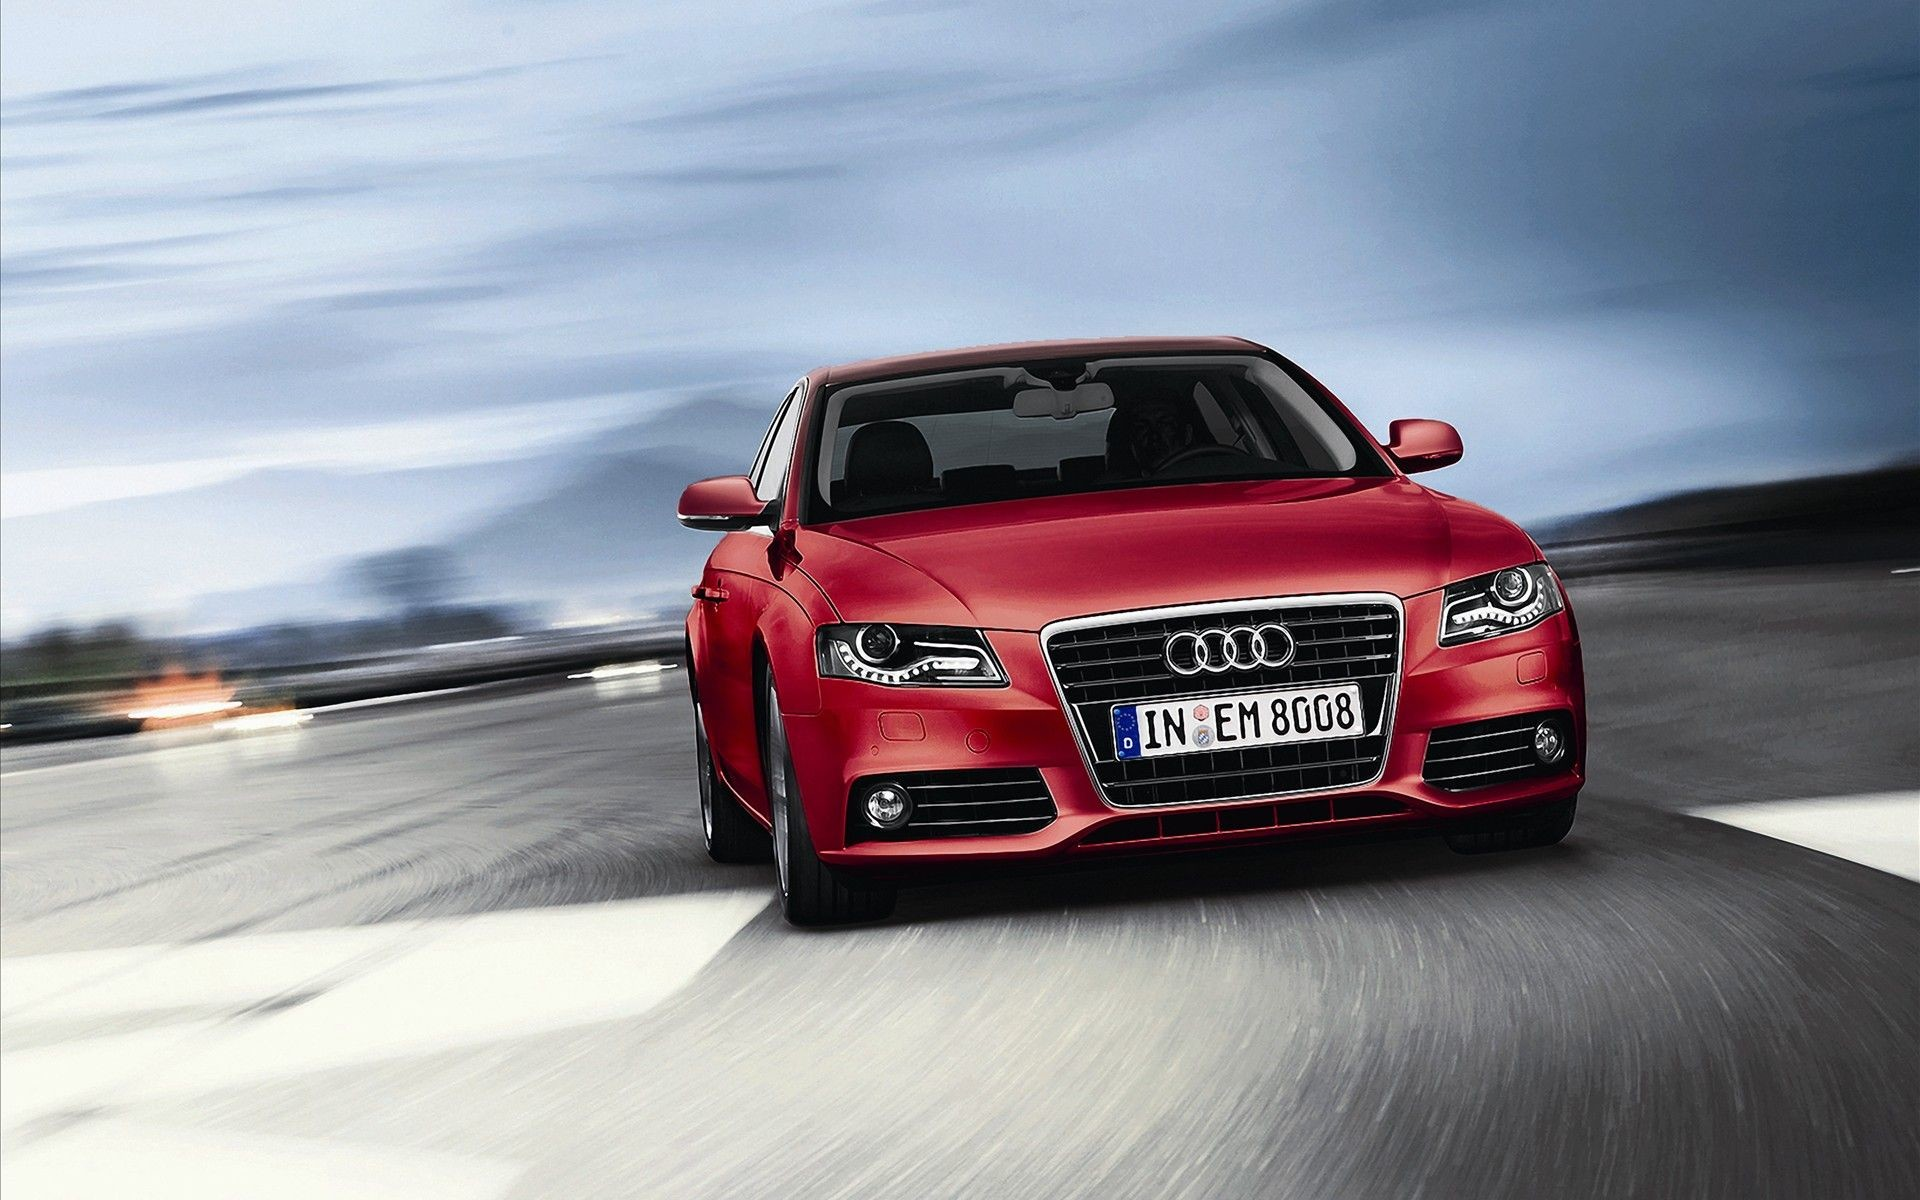 1920x1200 Audi A4 Red Cars Wallpaper Image